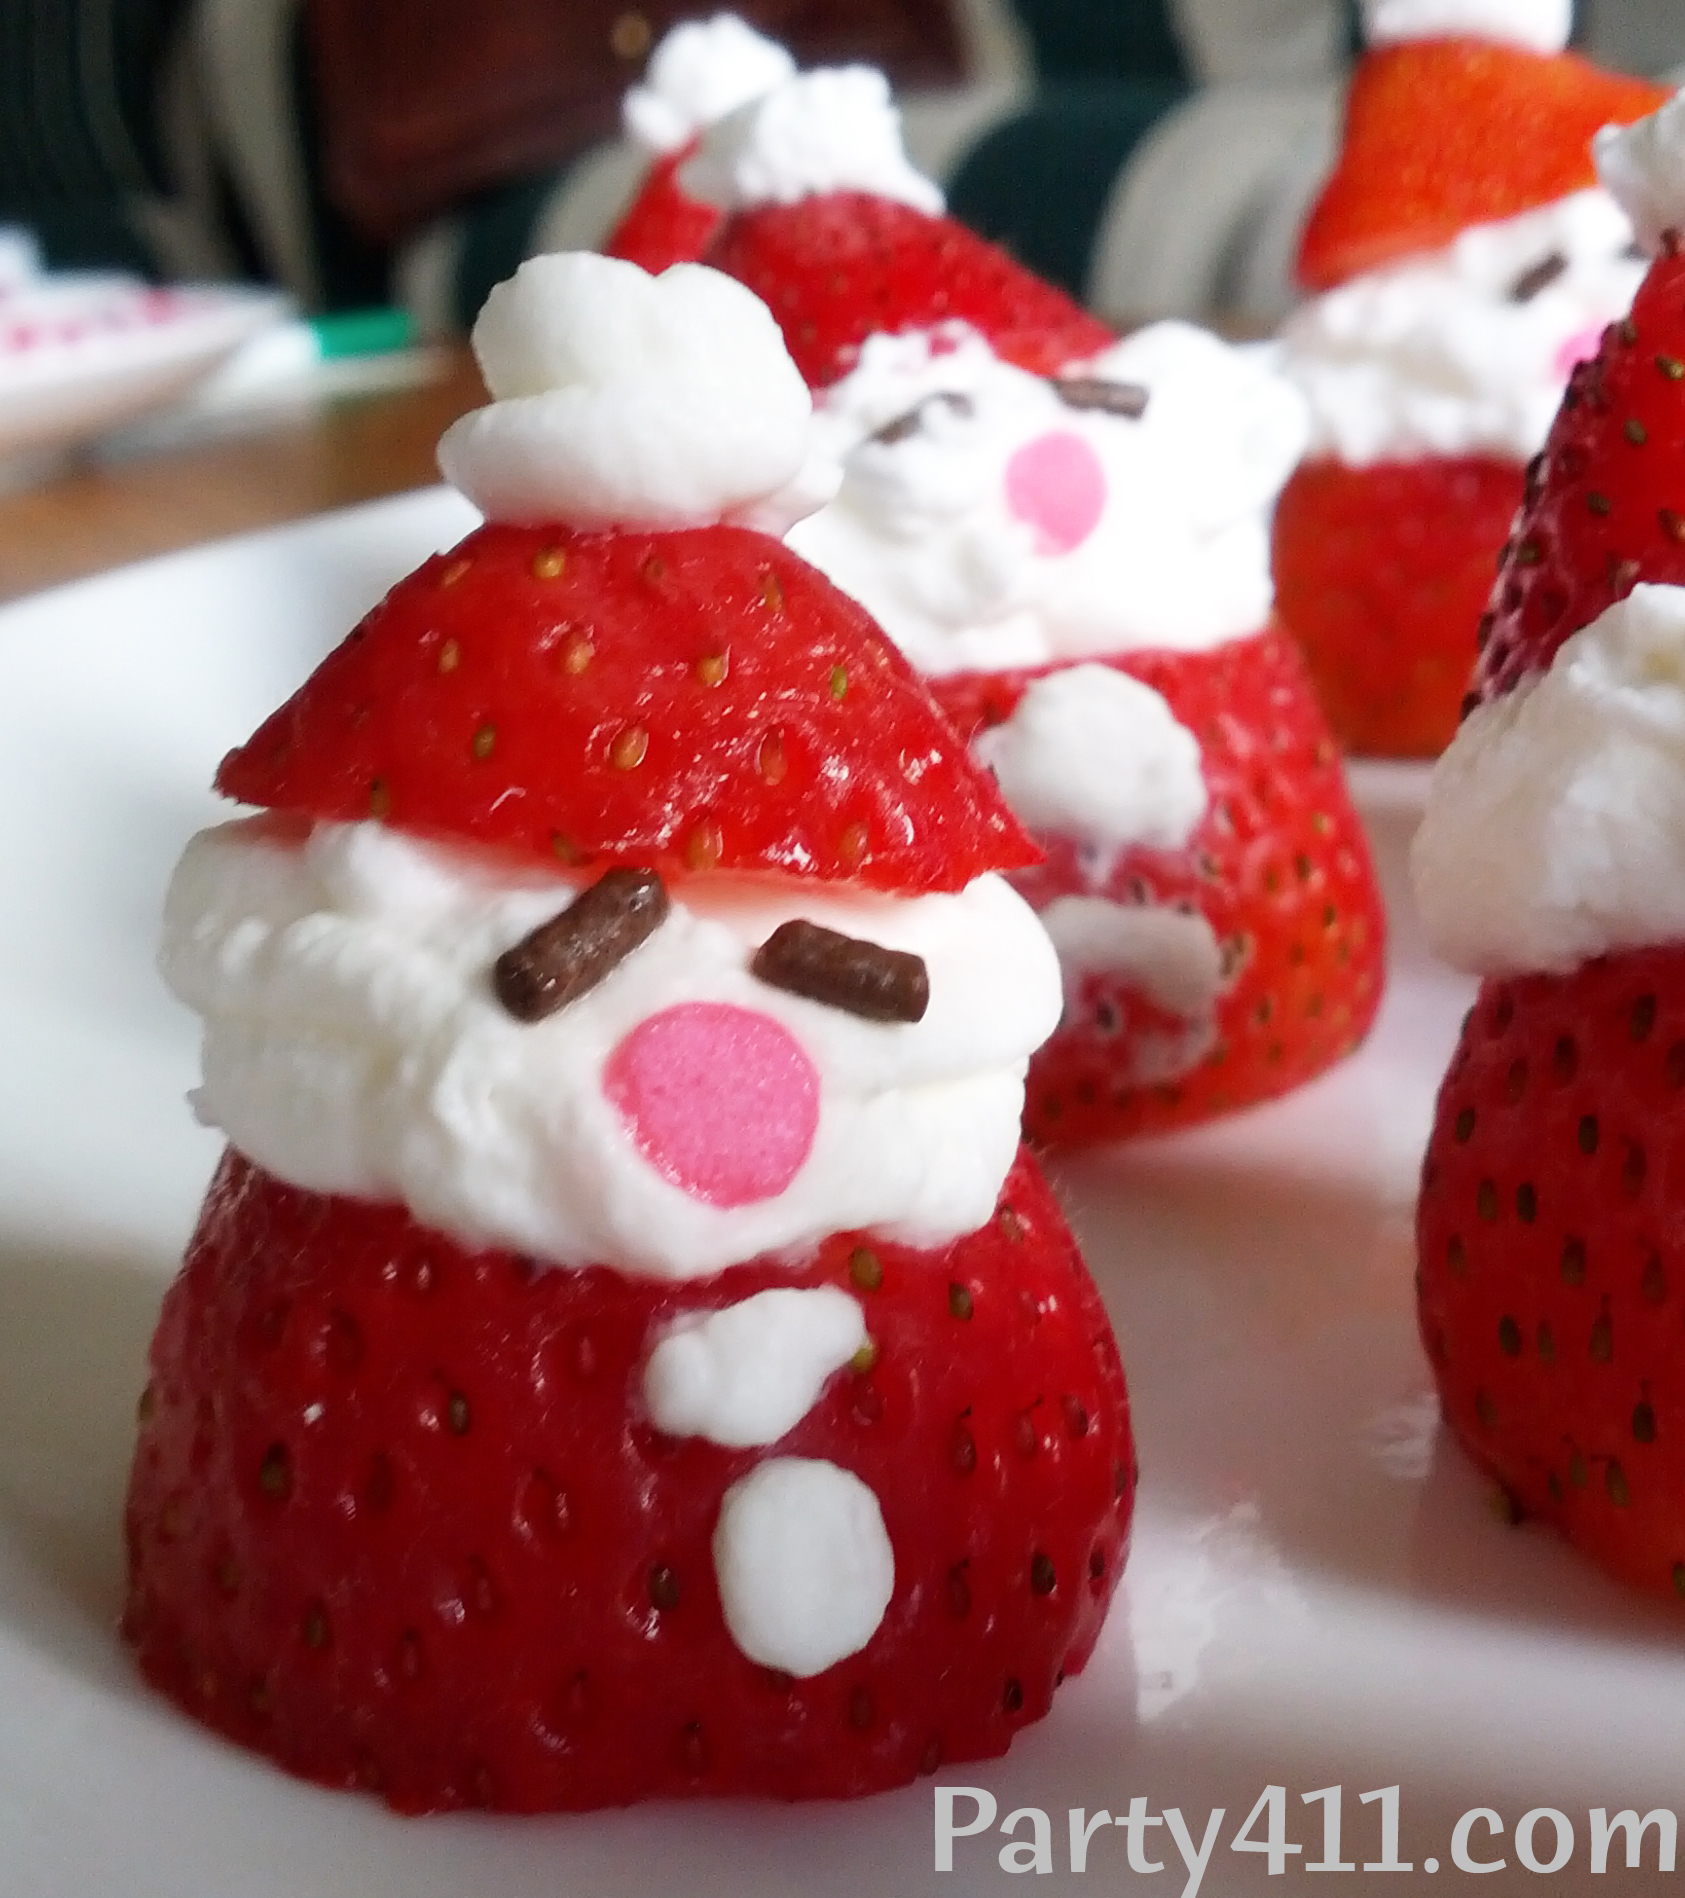 Christmas In July Party Food.Christmas In July Strawberry Santa Dessert Daily Party Dish